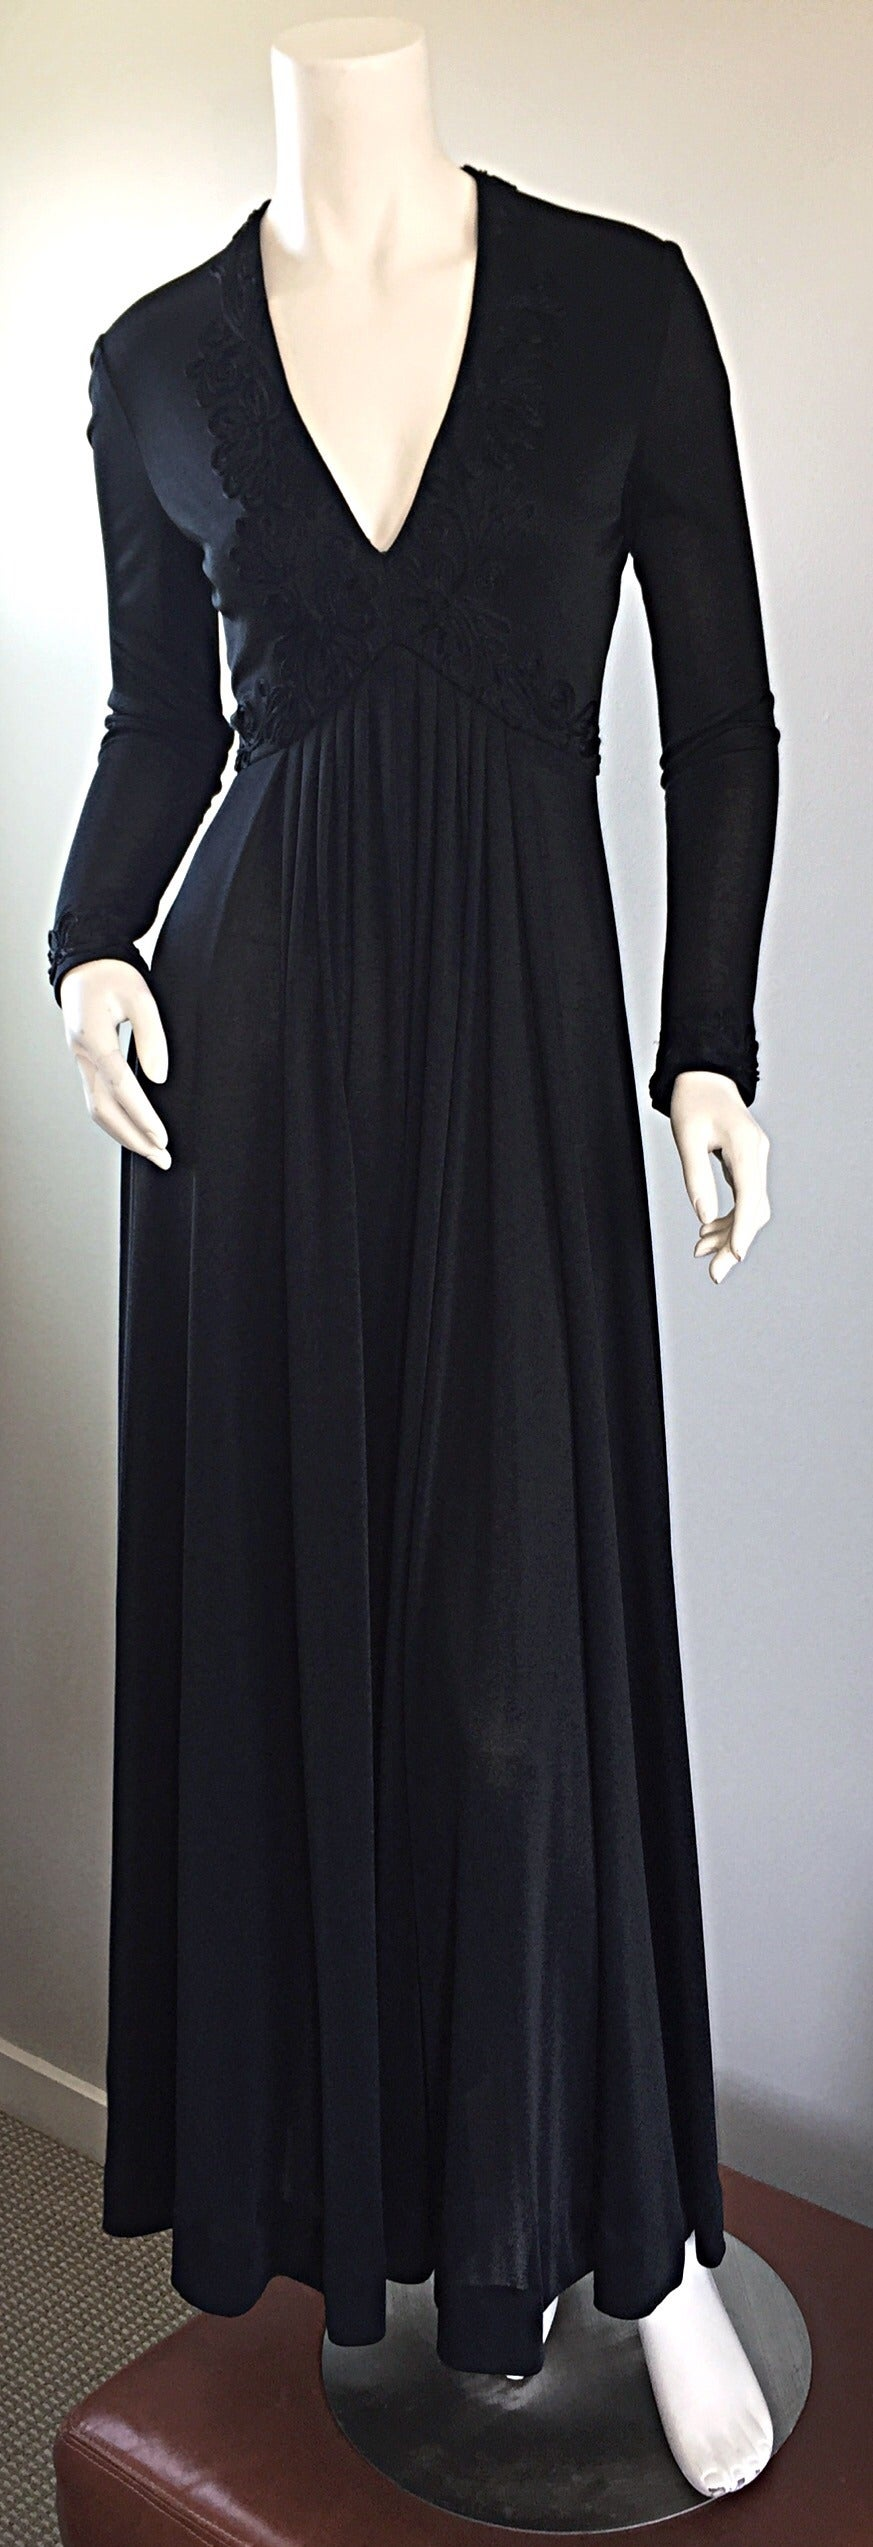 Vintage Jack Bryan Black Jersey Maxi Dress w/ Intricate Embroidery 1970s 70s 4